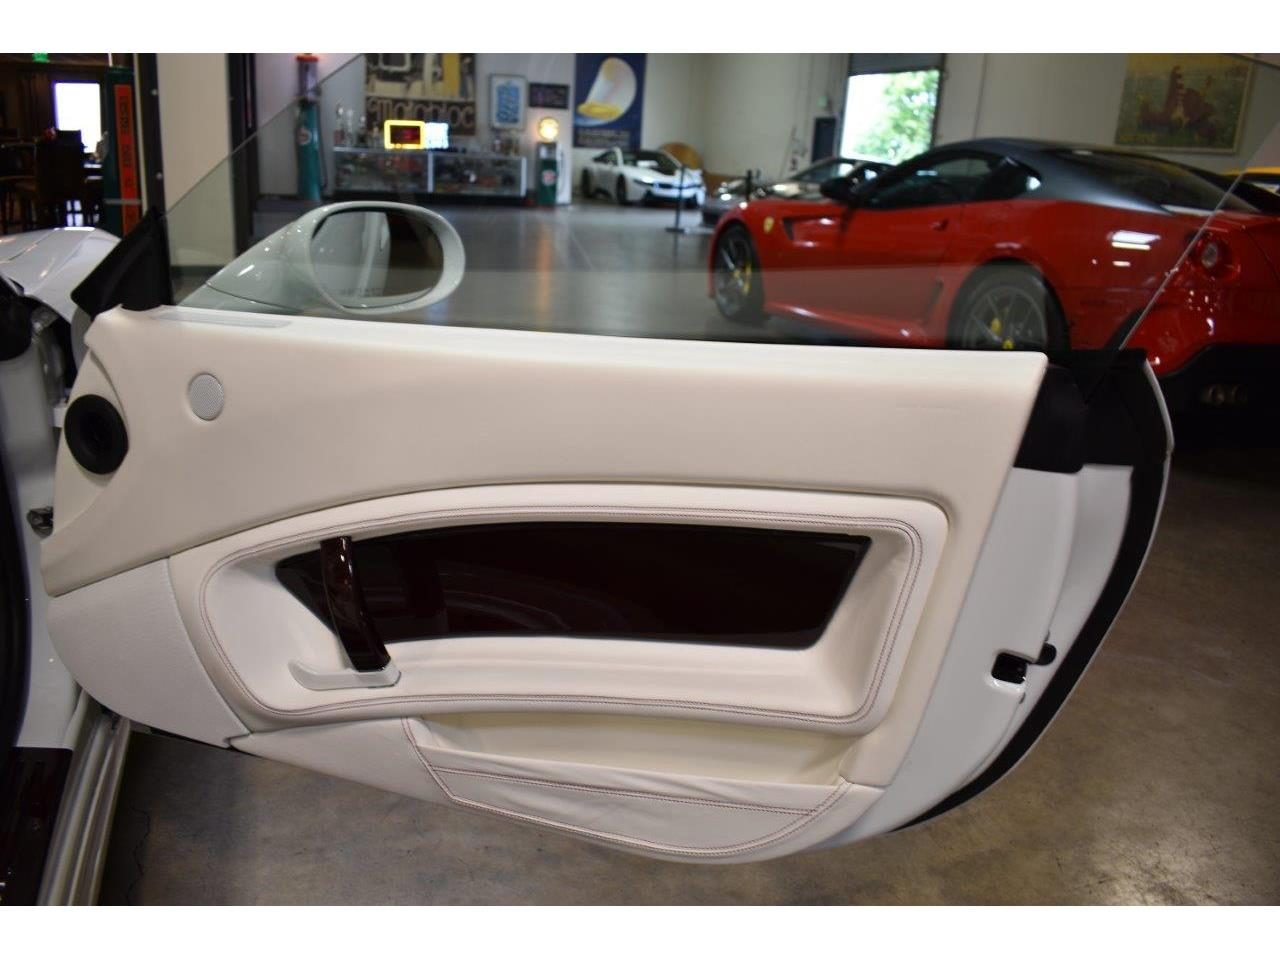 Large Picture of '10 Ferrari California located in Costa Mesa California - $159,000.00 Offered by Crevier Classic Cars - QD41